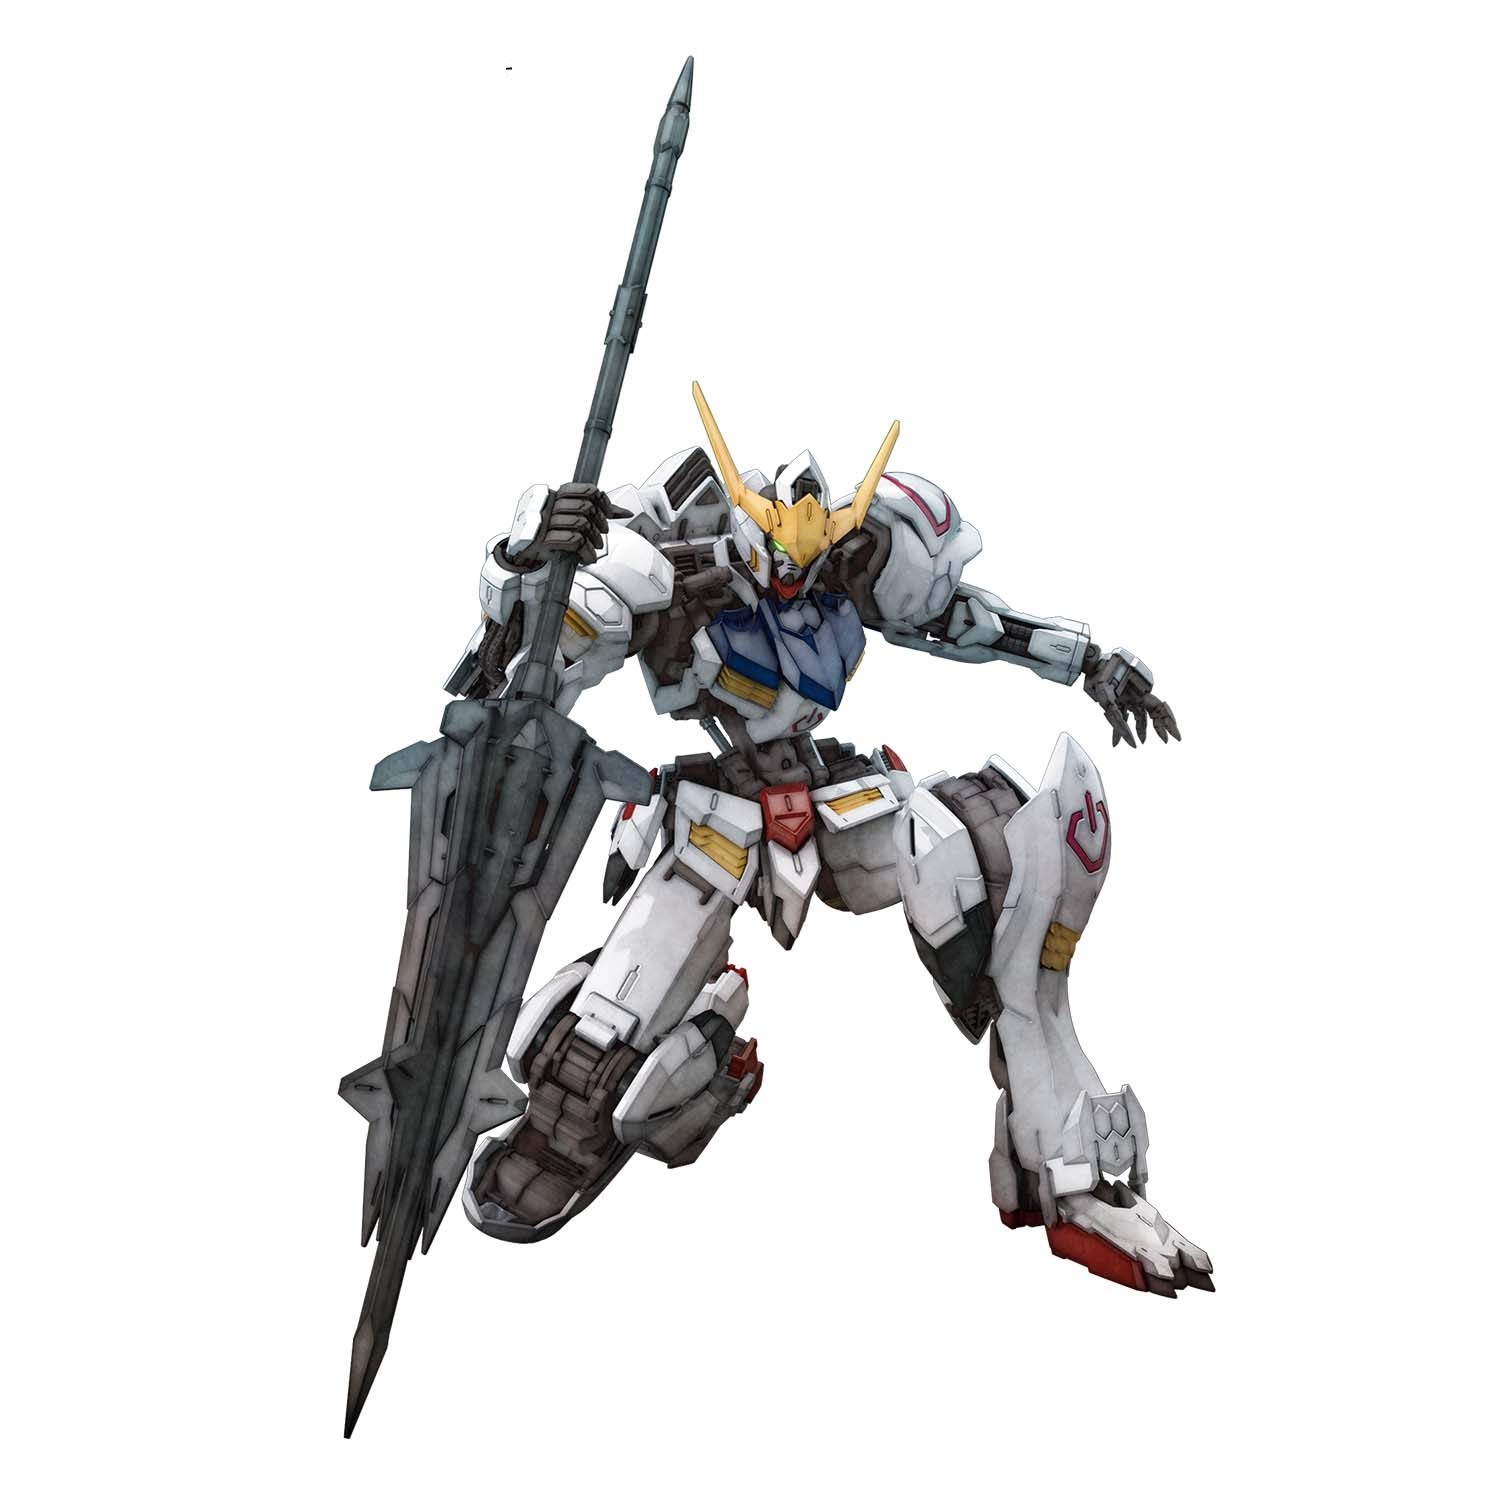 Bandai Hobby MG 1/100 Gundam Barbatos Gundam: IBO Model Kit